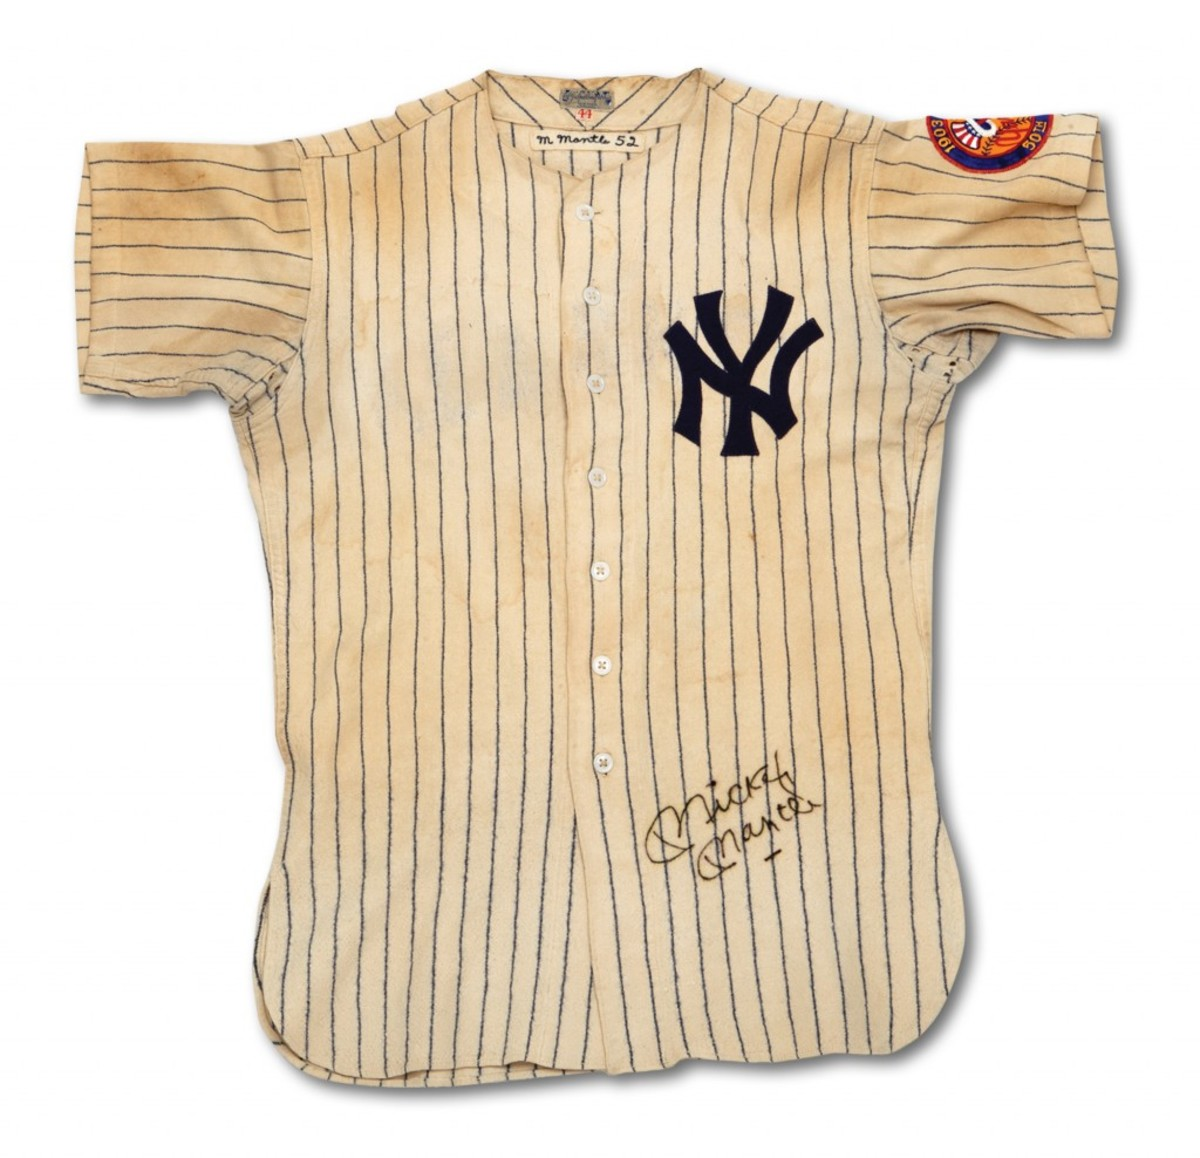 1952 Mantle Jersey